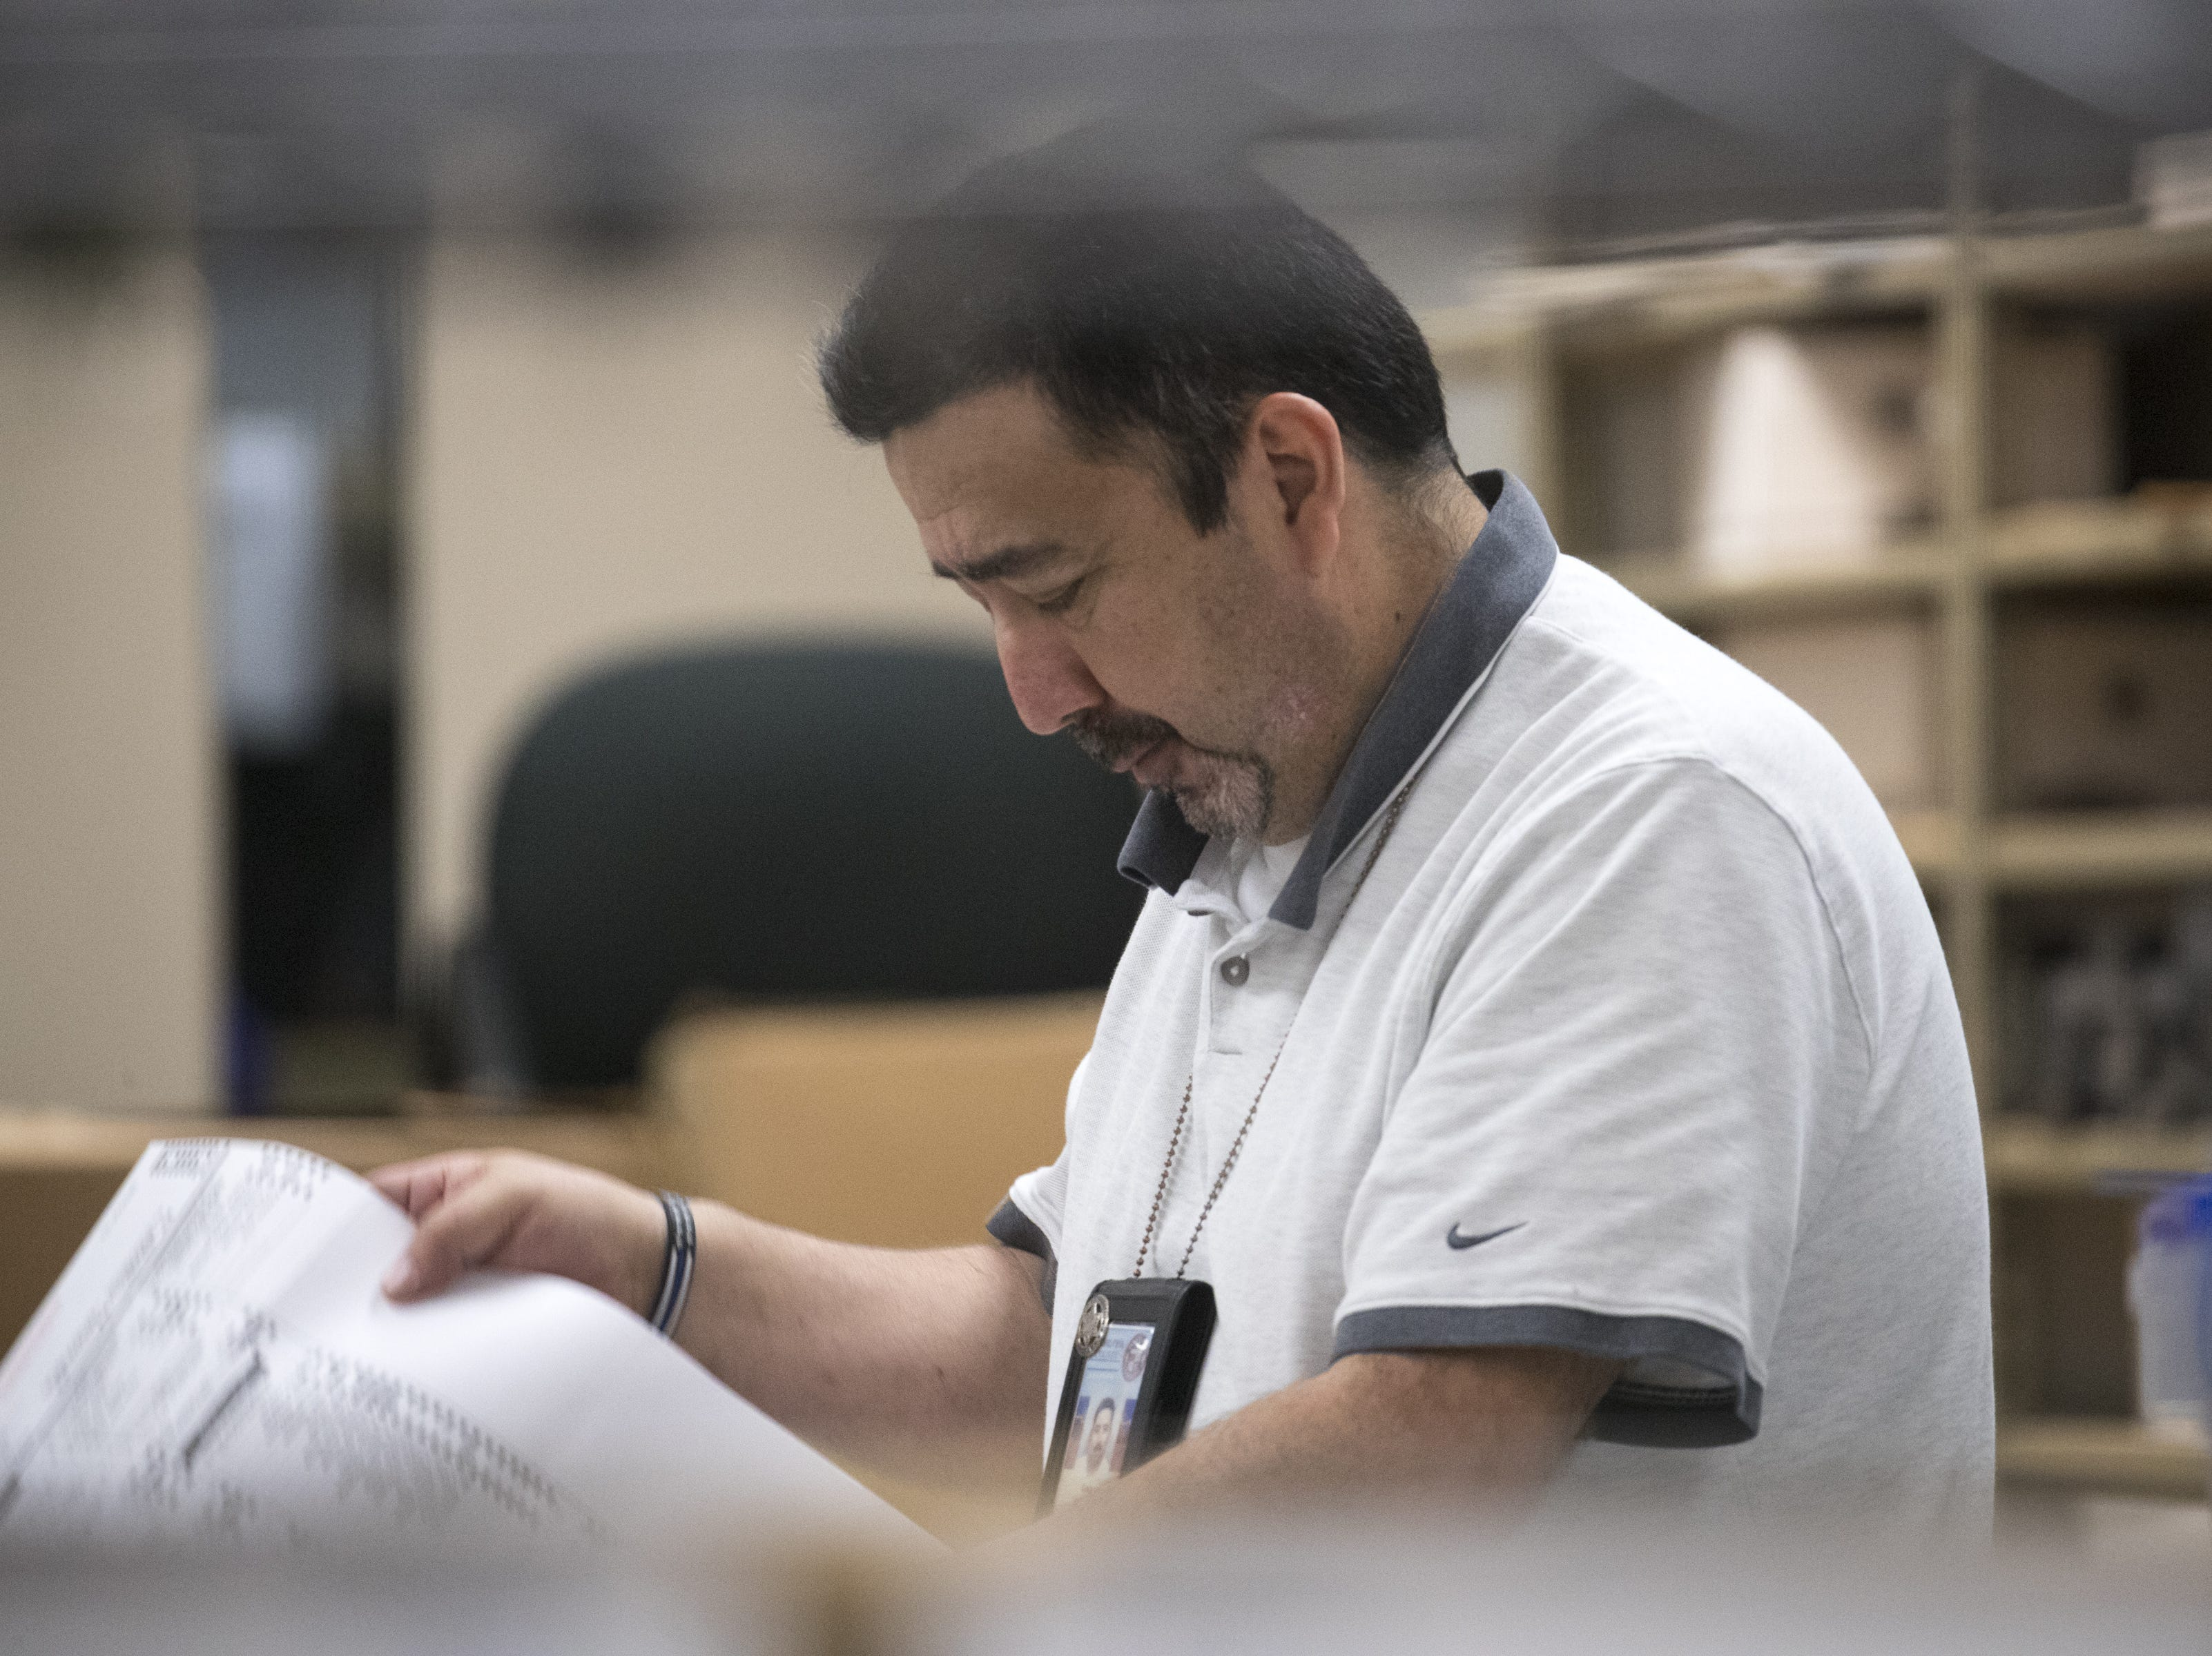 Gary Ramirez processes ballots on Nov. 7, 2018, at the Maricopa County Tabulation and Election Center, 510 S. 3rd Ave., Phoenix.